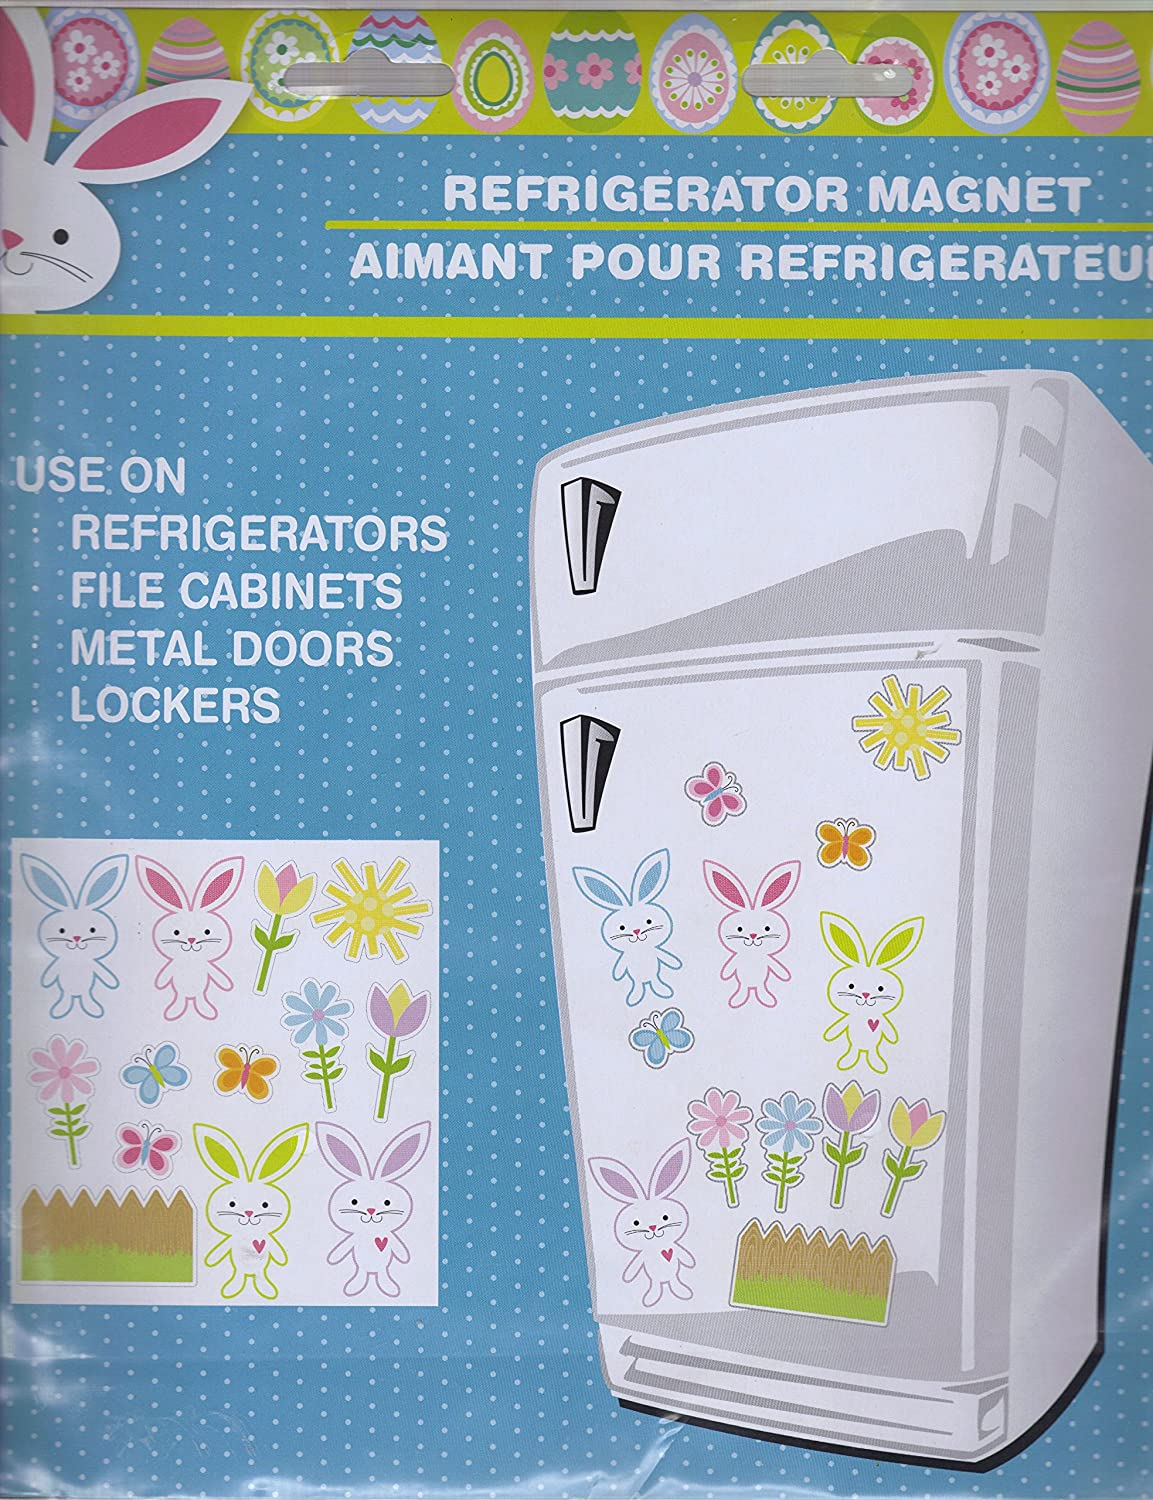 Build Your Own Easter Bunny, Flower & Butterfly Refrigerator Magnet Sheet